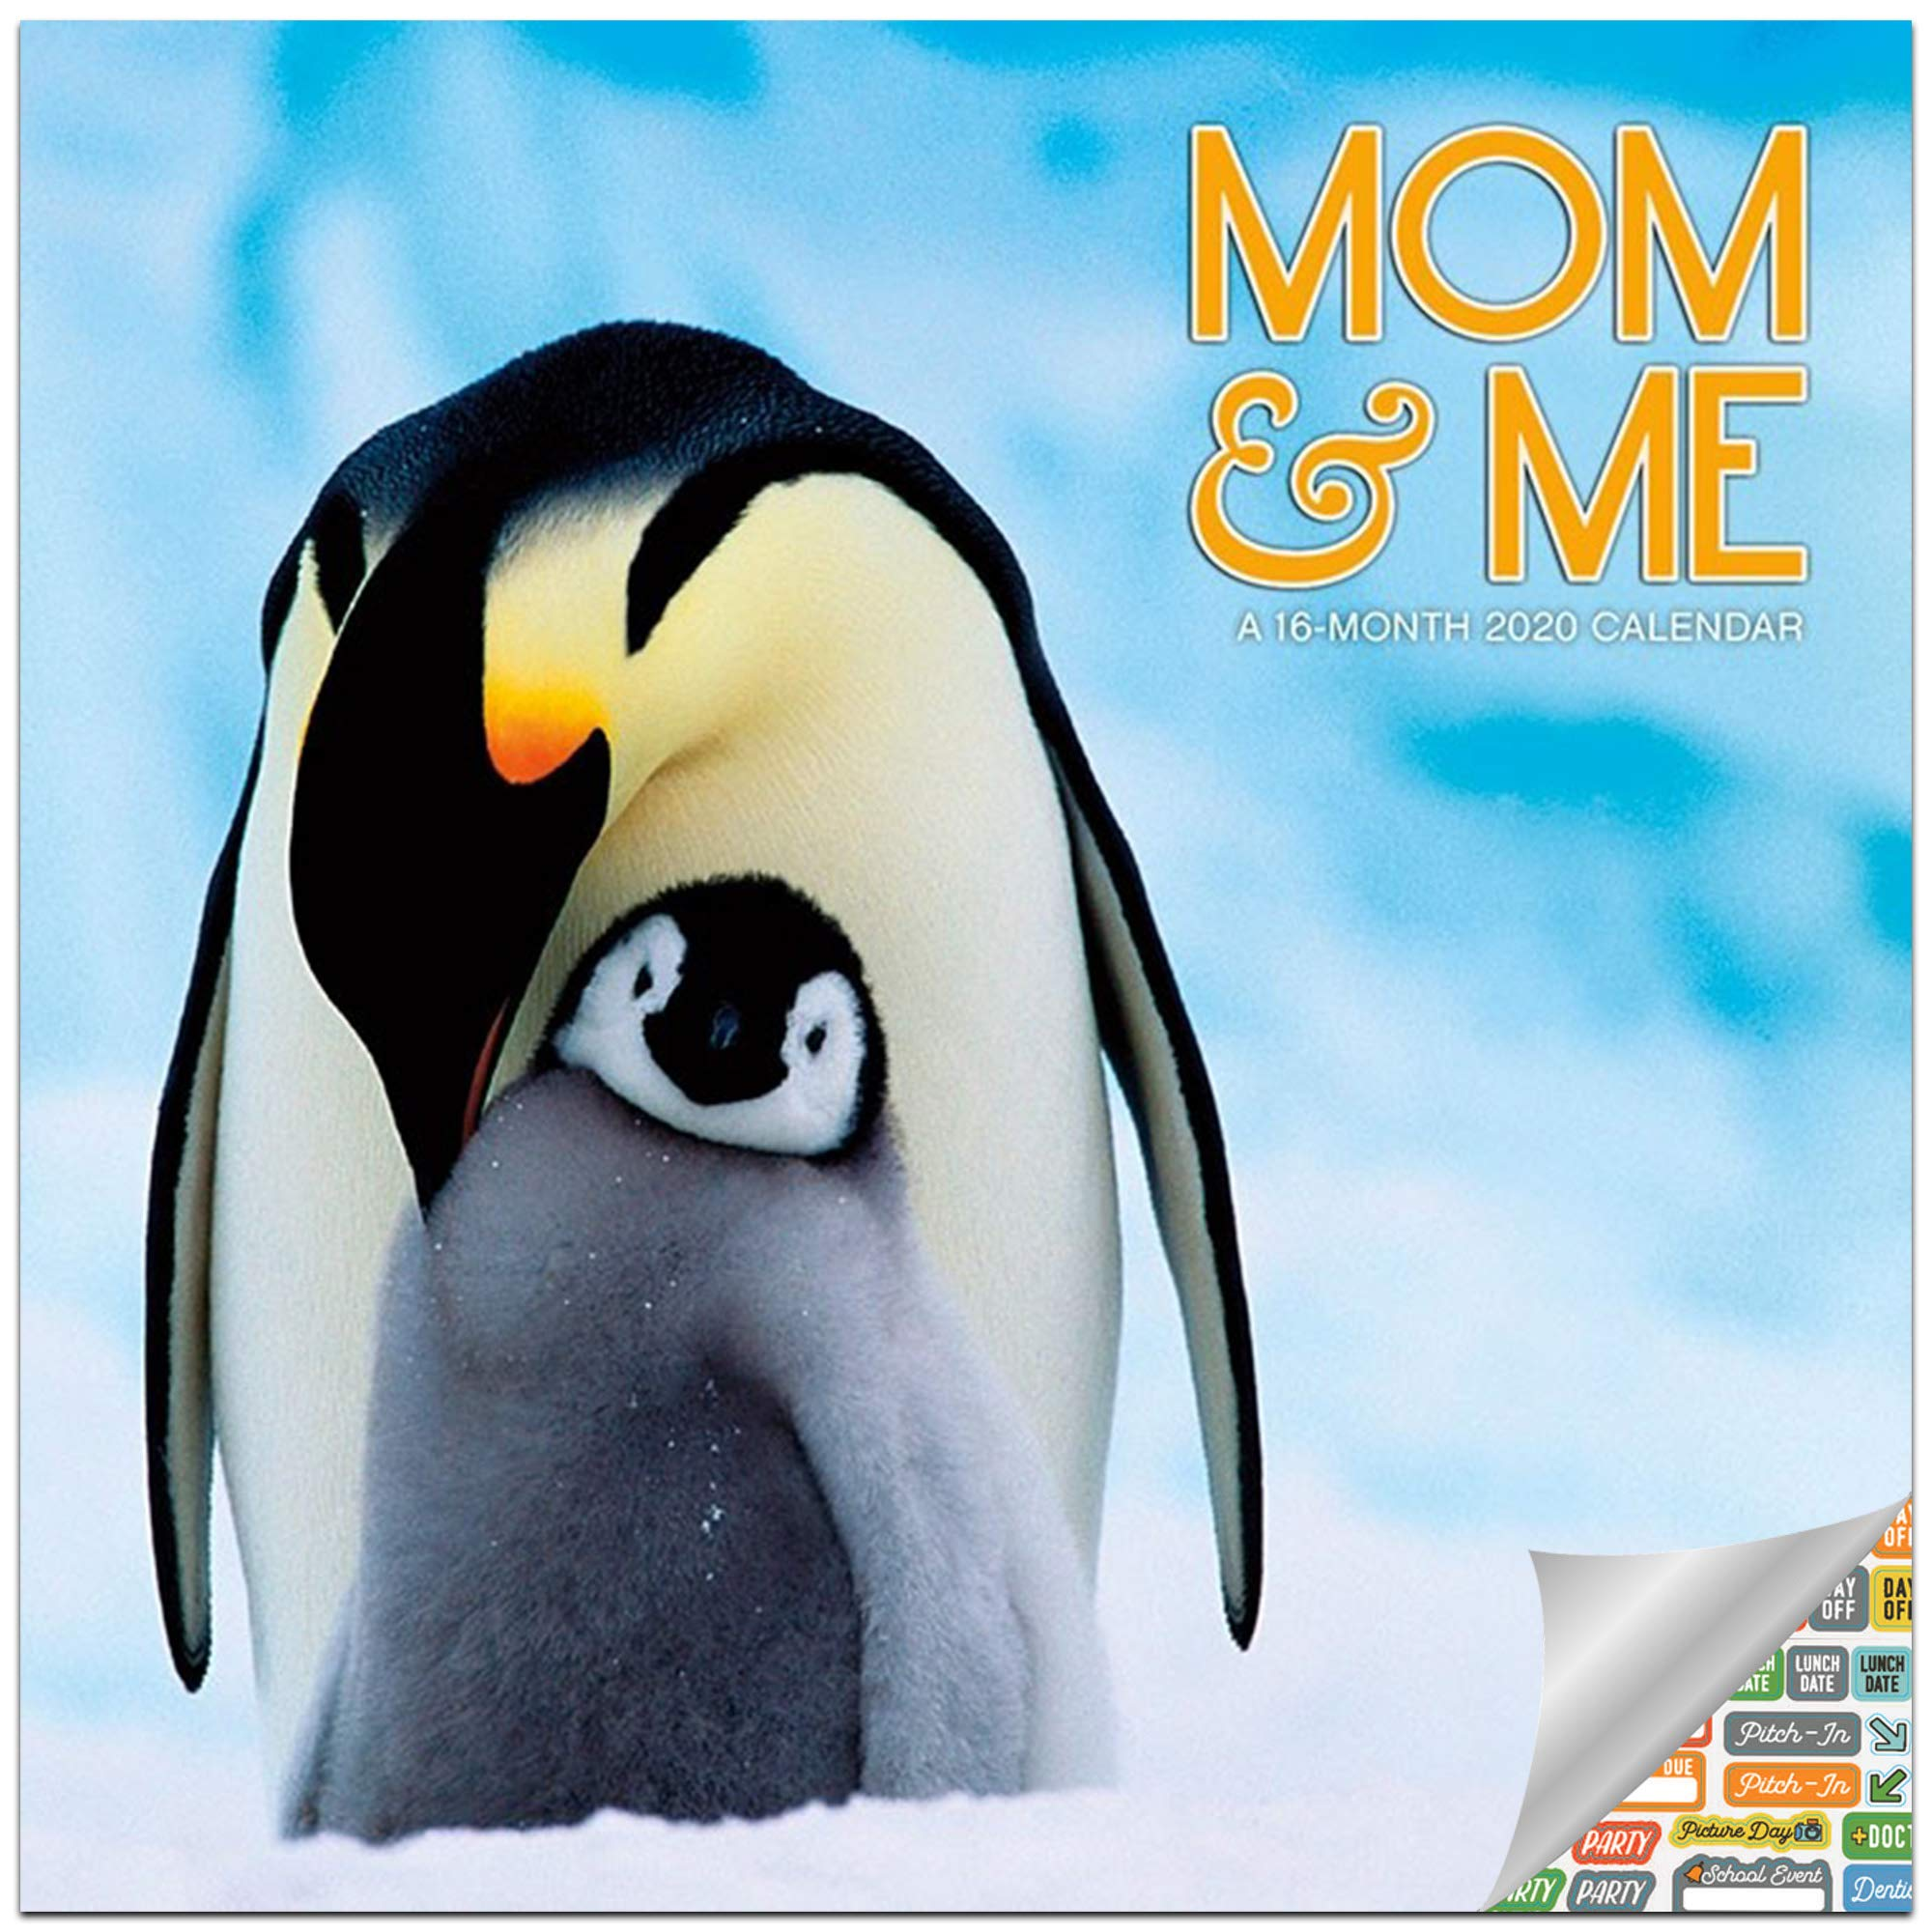 Mom Me Calendar 2020 Set Deluxe 2020 Baby Animals Wall Calendar With Over 100 Calendar Stickers Animal Babies And Mothers Gifts Office Supplies Buy Online At Best Price In Uae Amazon Ae